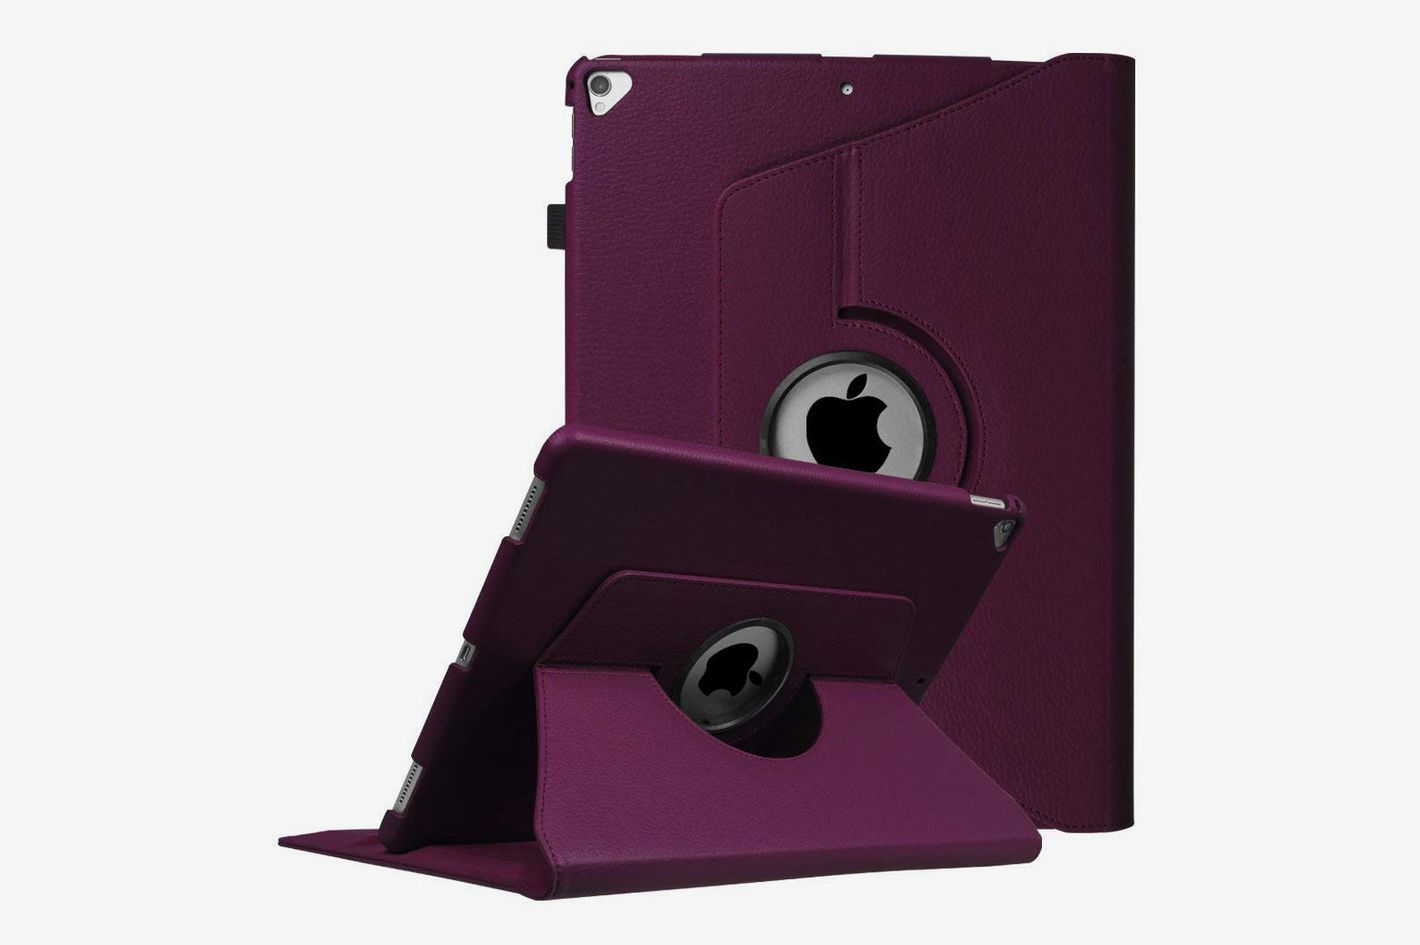 Fintie iPad Pro 12.9 Case \u2014 360 Degree Rotating Stand With Smart Protective Cover Auto 15 Best Cases 2018